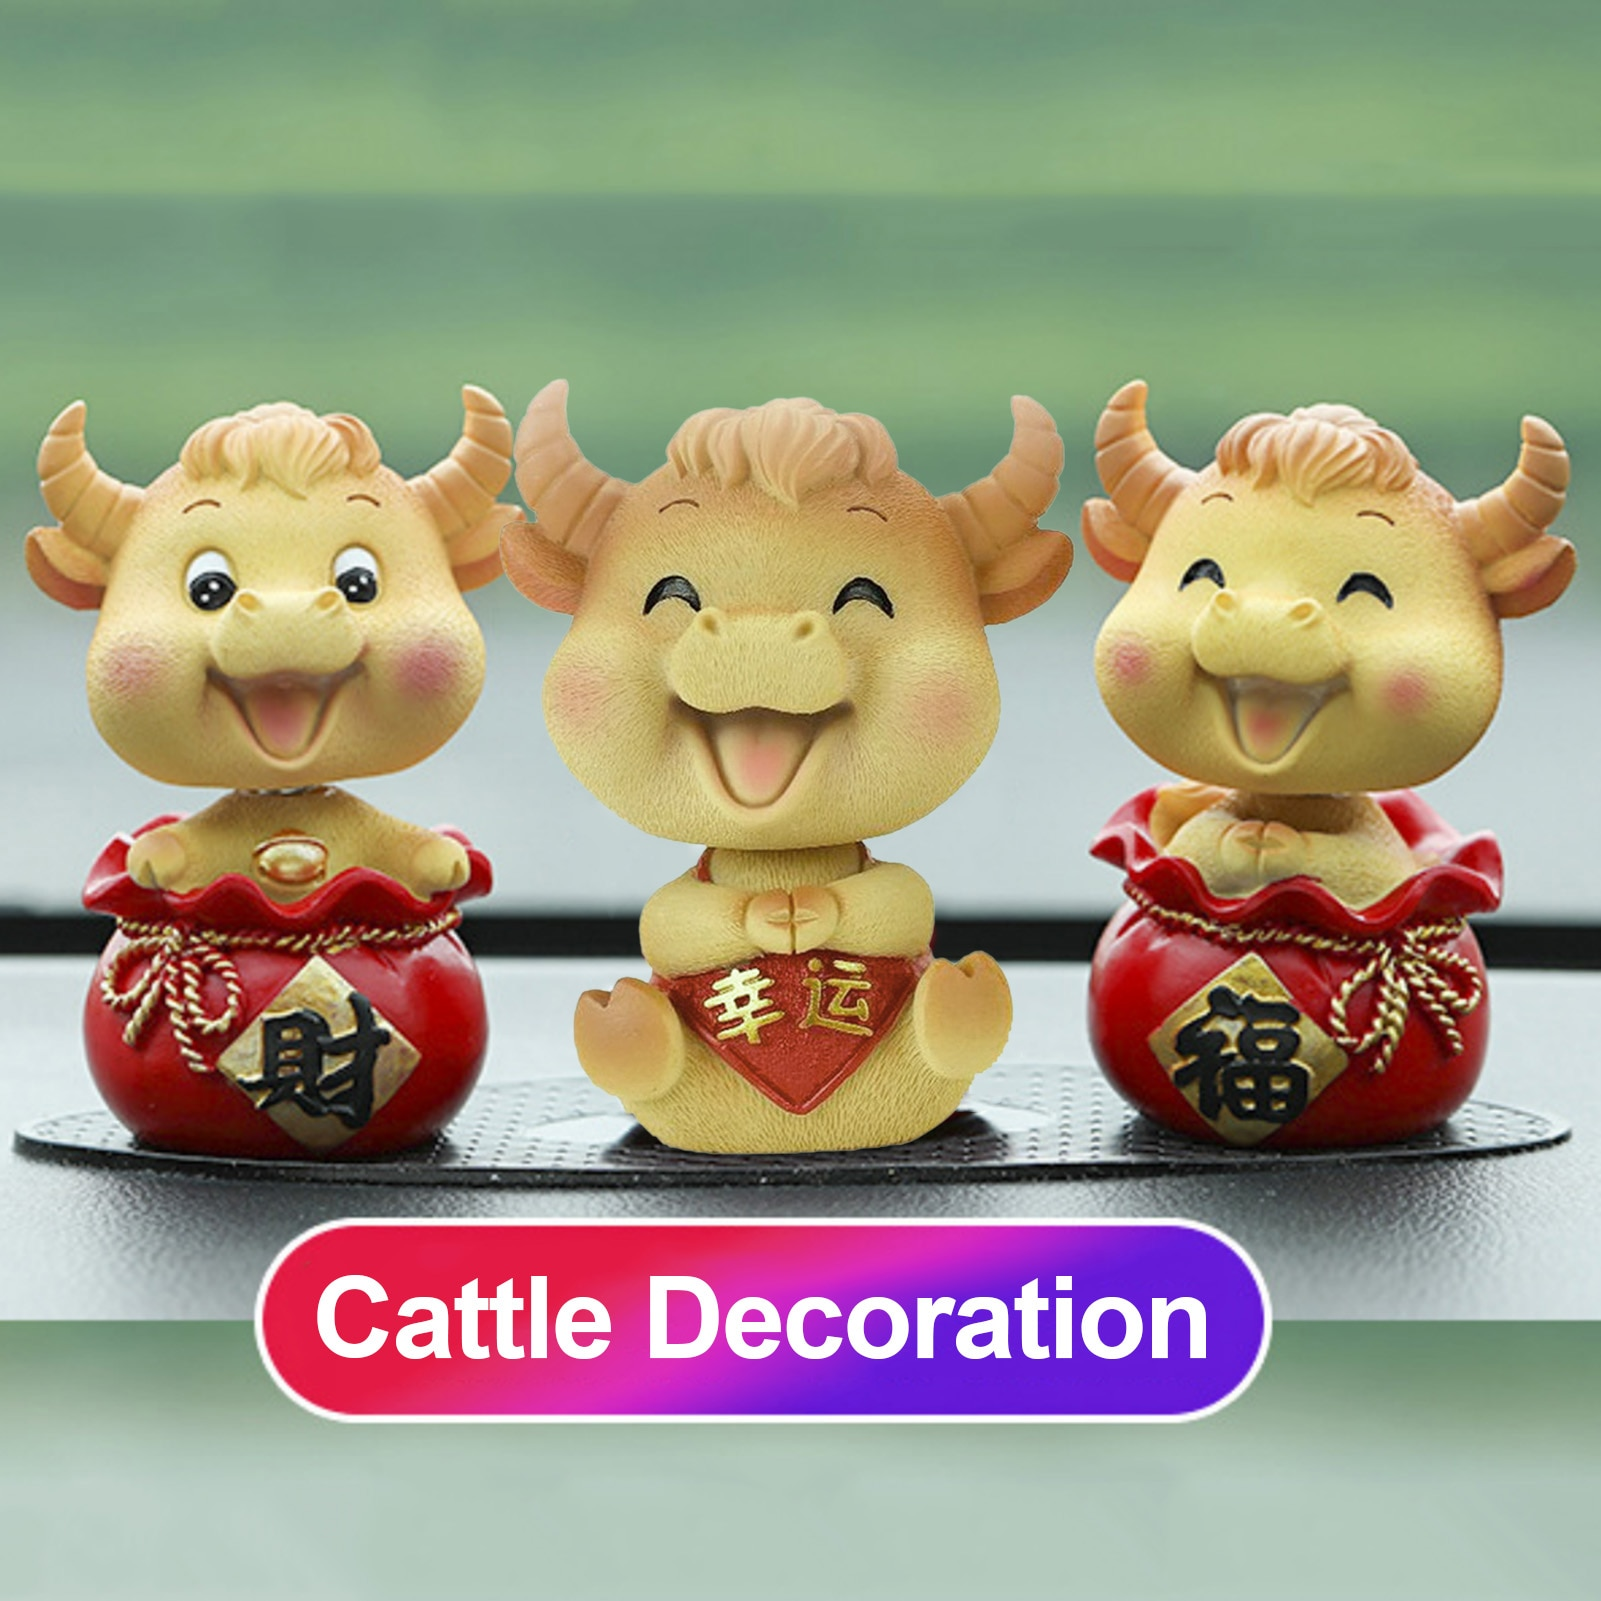 1pc Cute Cattle Decorations Car Ox Toy Ornament DIY Decoration Auspicious New Year Personality Festive Gift Mascot Resin Doll